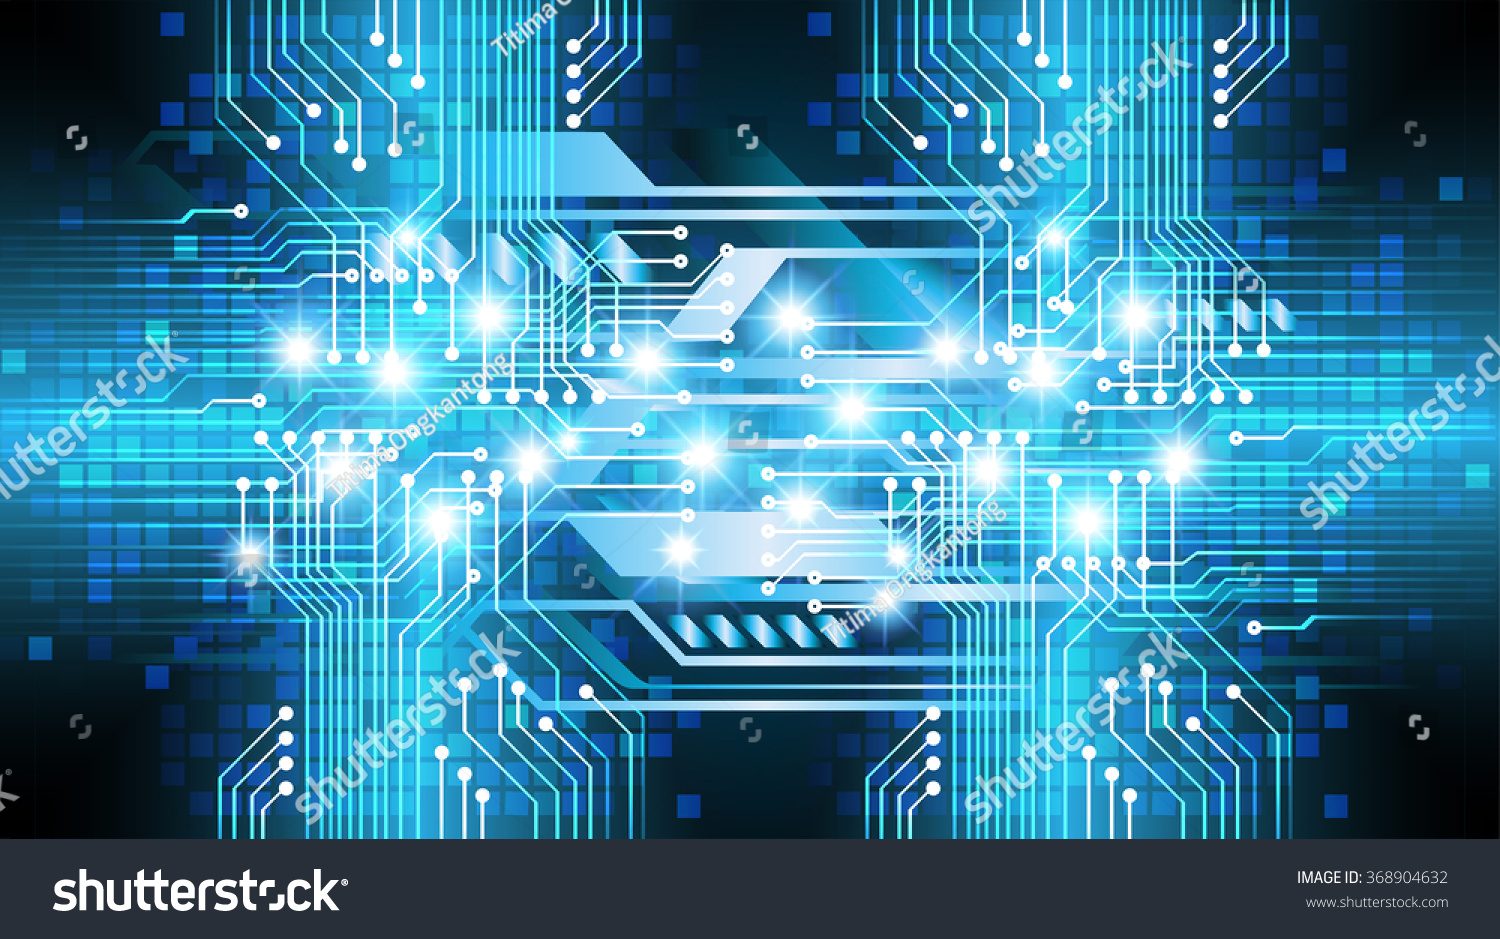 Abstract Circuit Board Background By Silvertiger: Dark Blue Silver Light Abstract Technology Stock